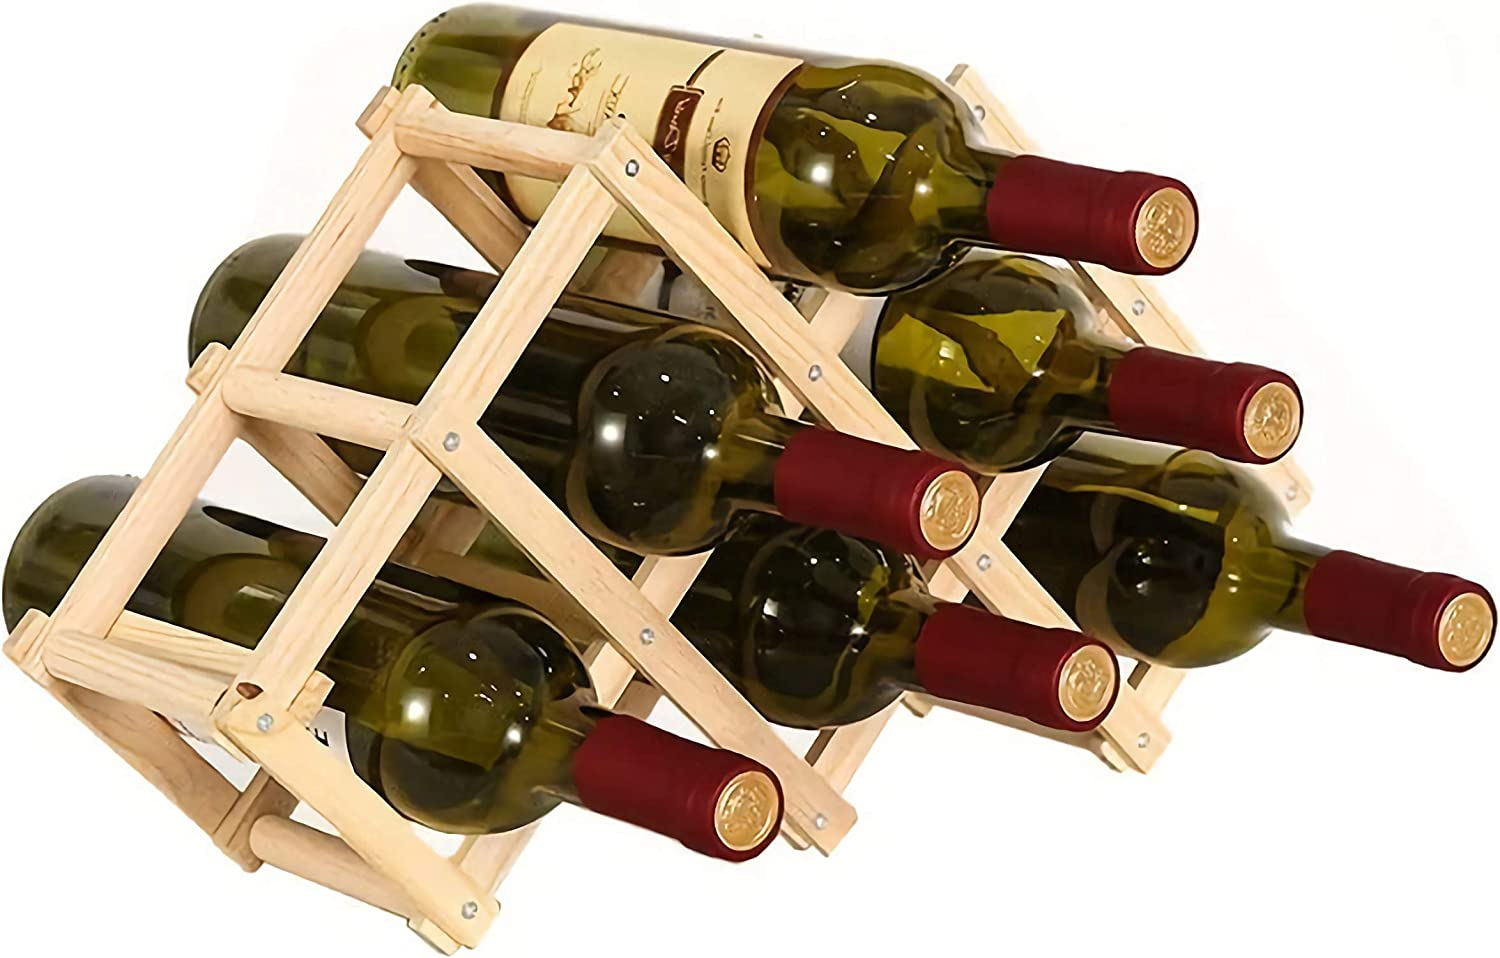 Foldable Wooden Wine Rack Storag Tabletop Max 90% OFF online shopping Stackable Countertop